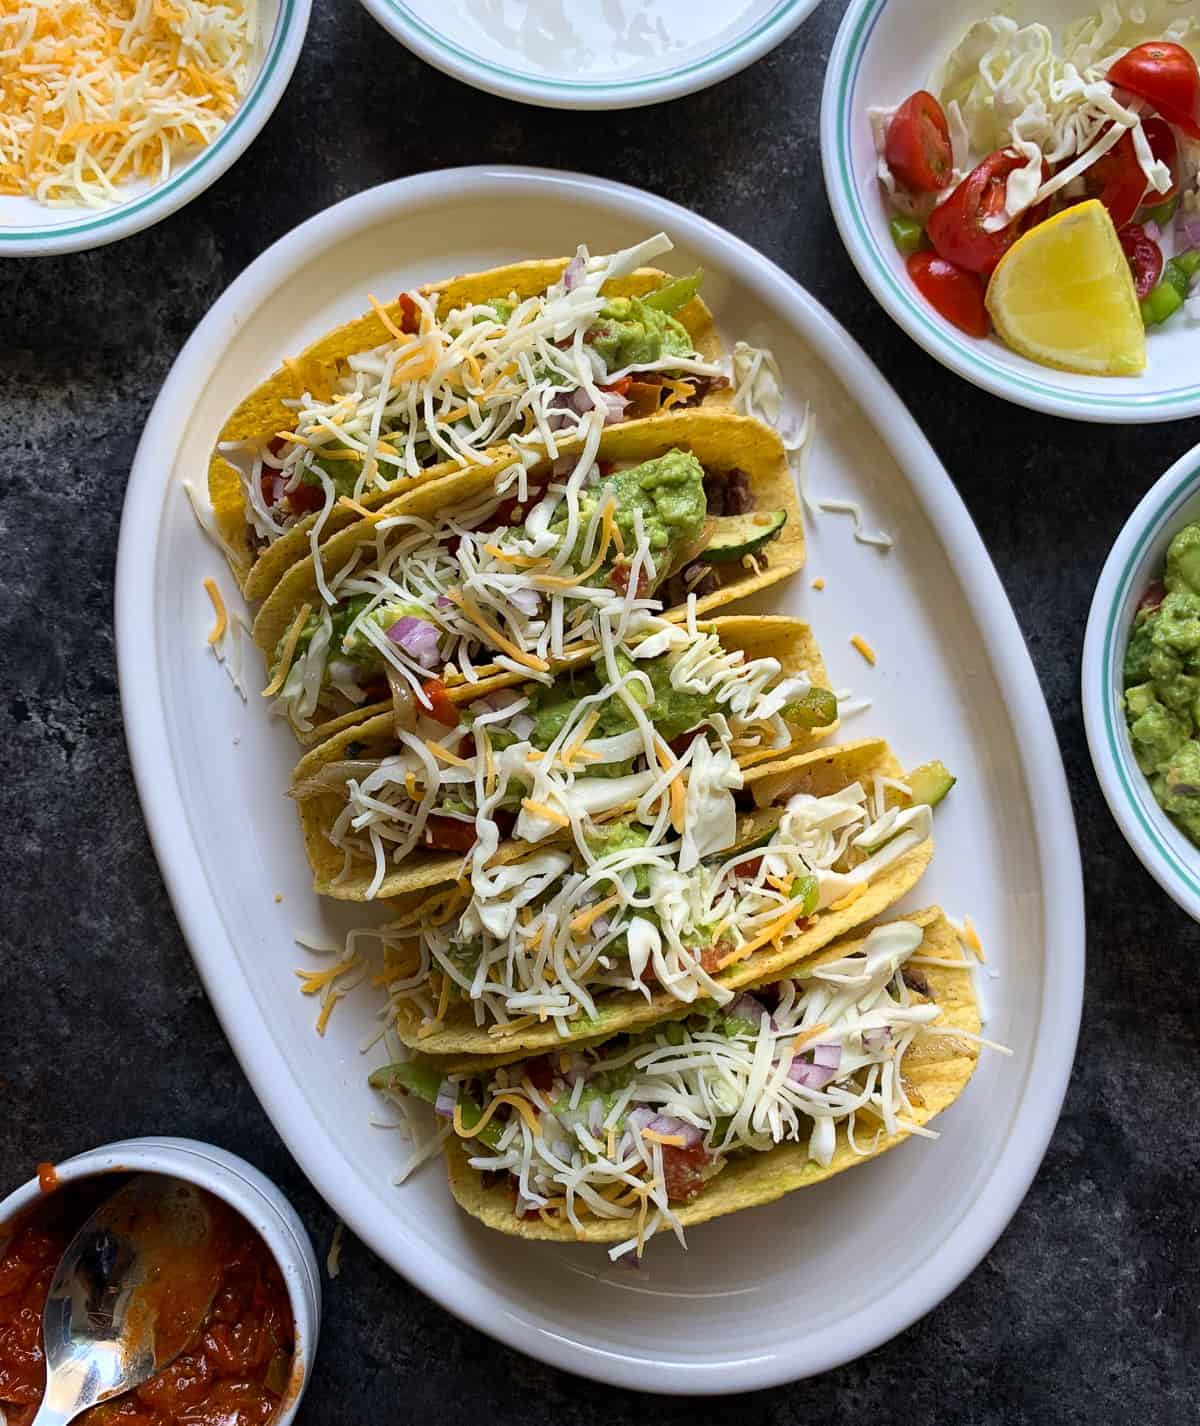 Tacos served on a white platter with other toppings